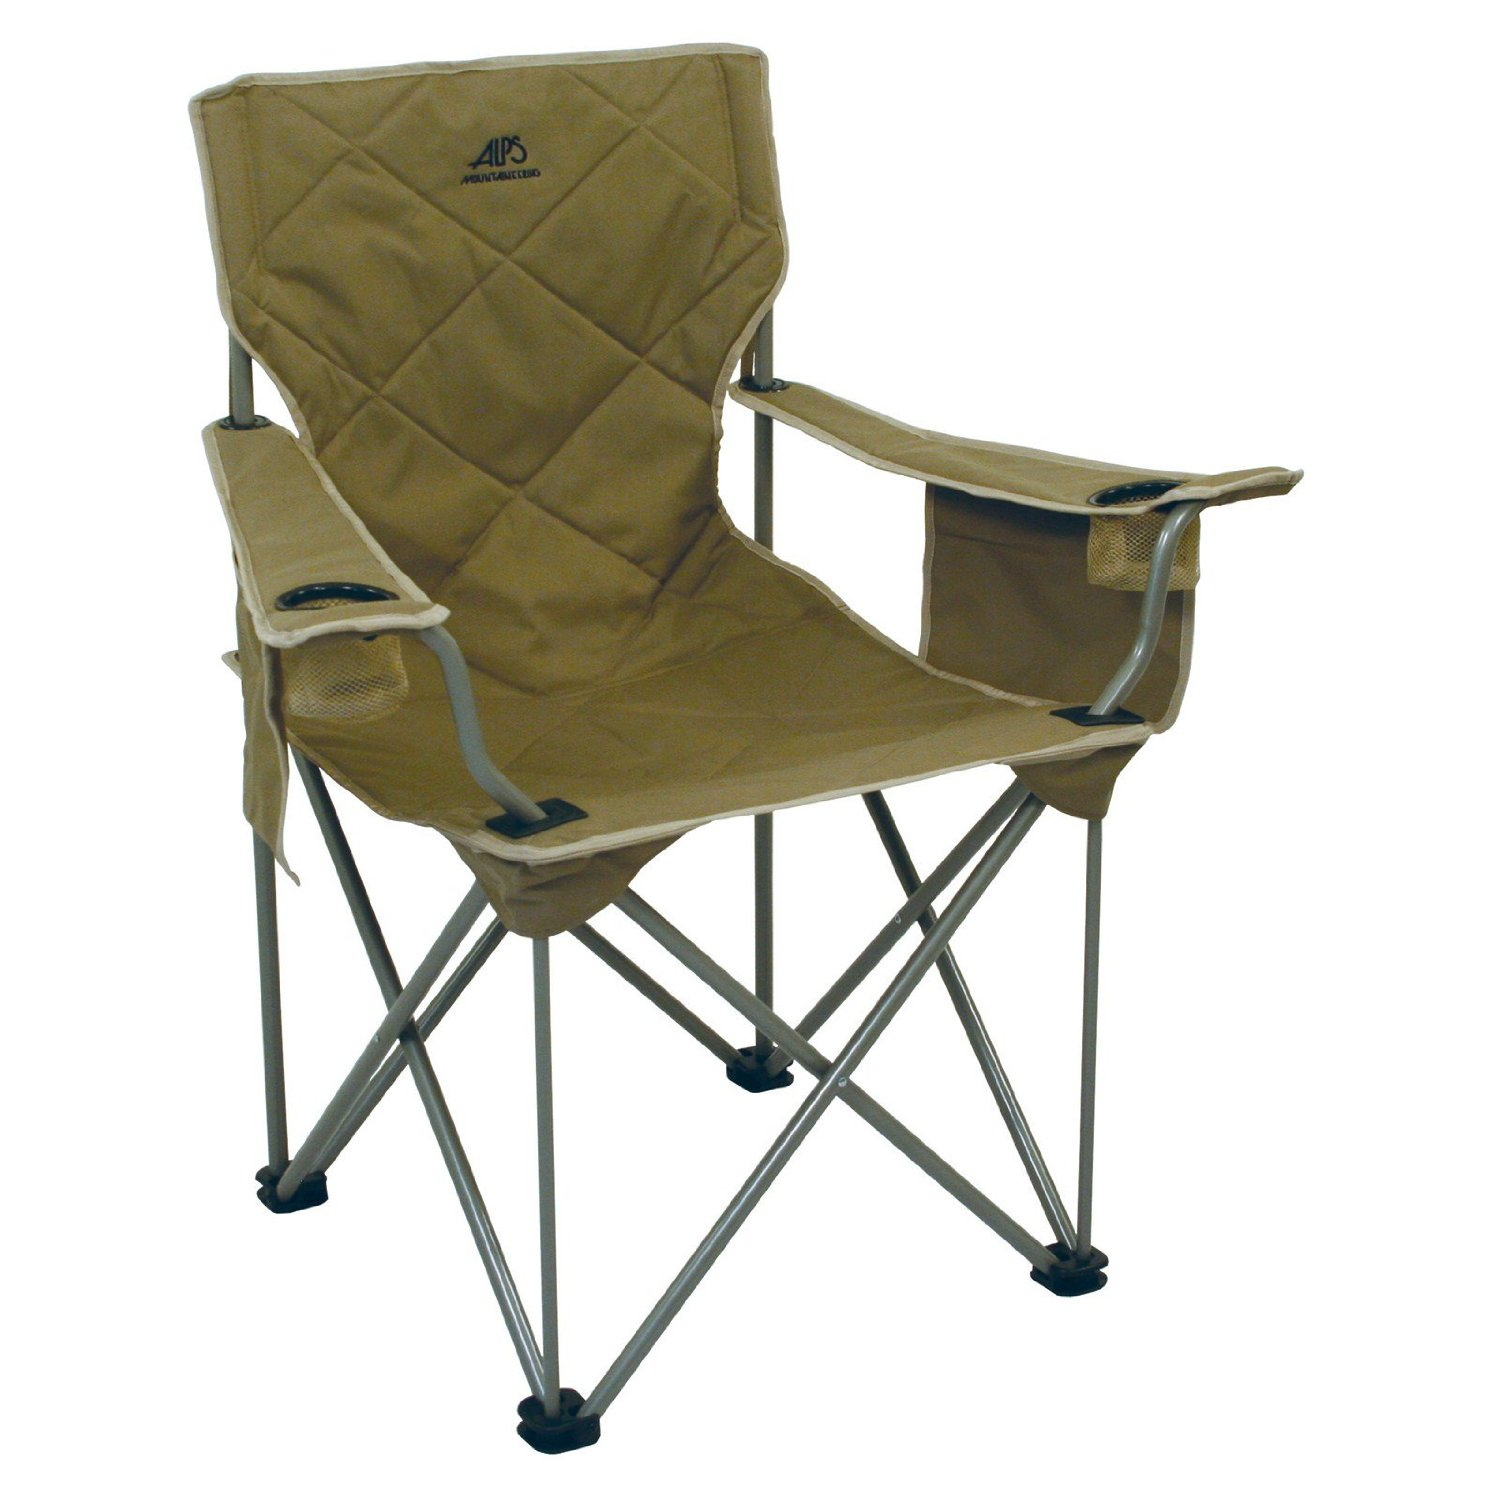 quality folding chairs rent a lift chair alps mountaineering king kong camping